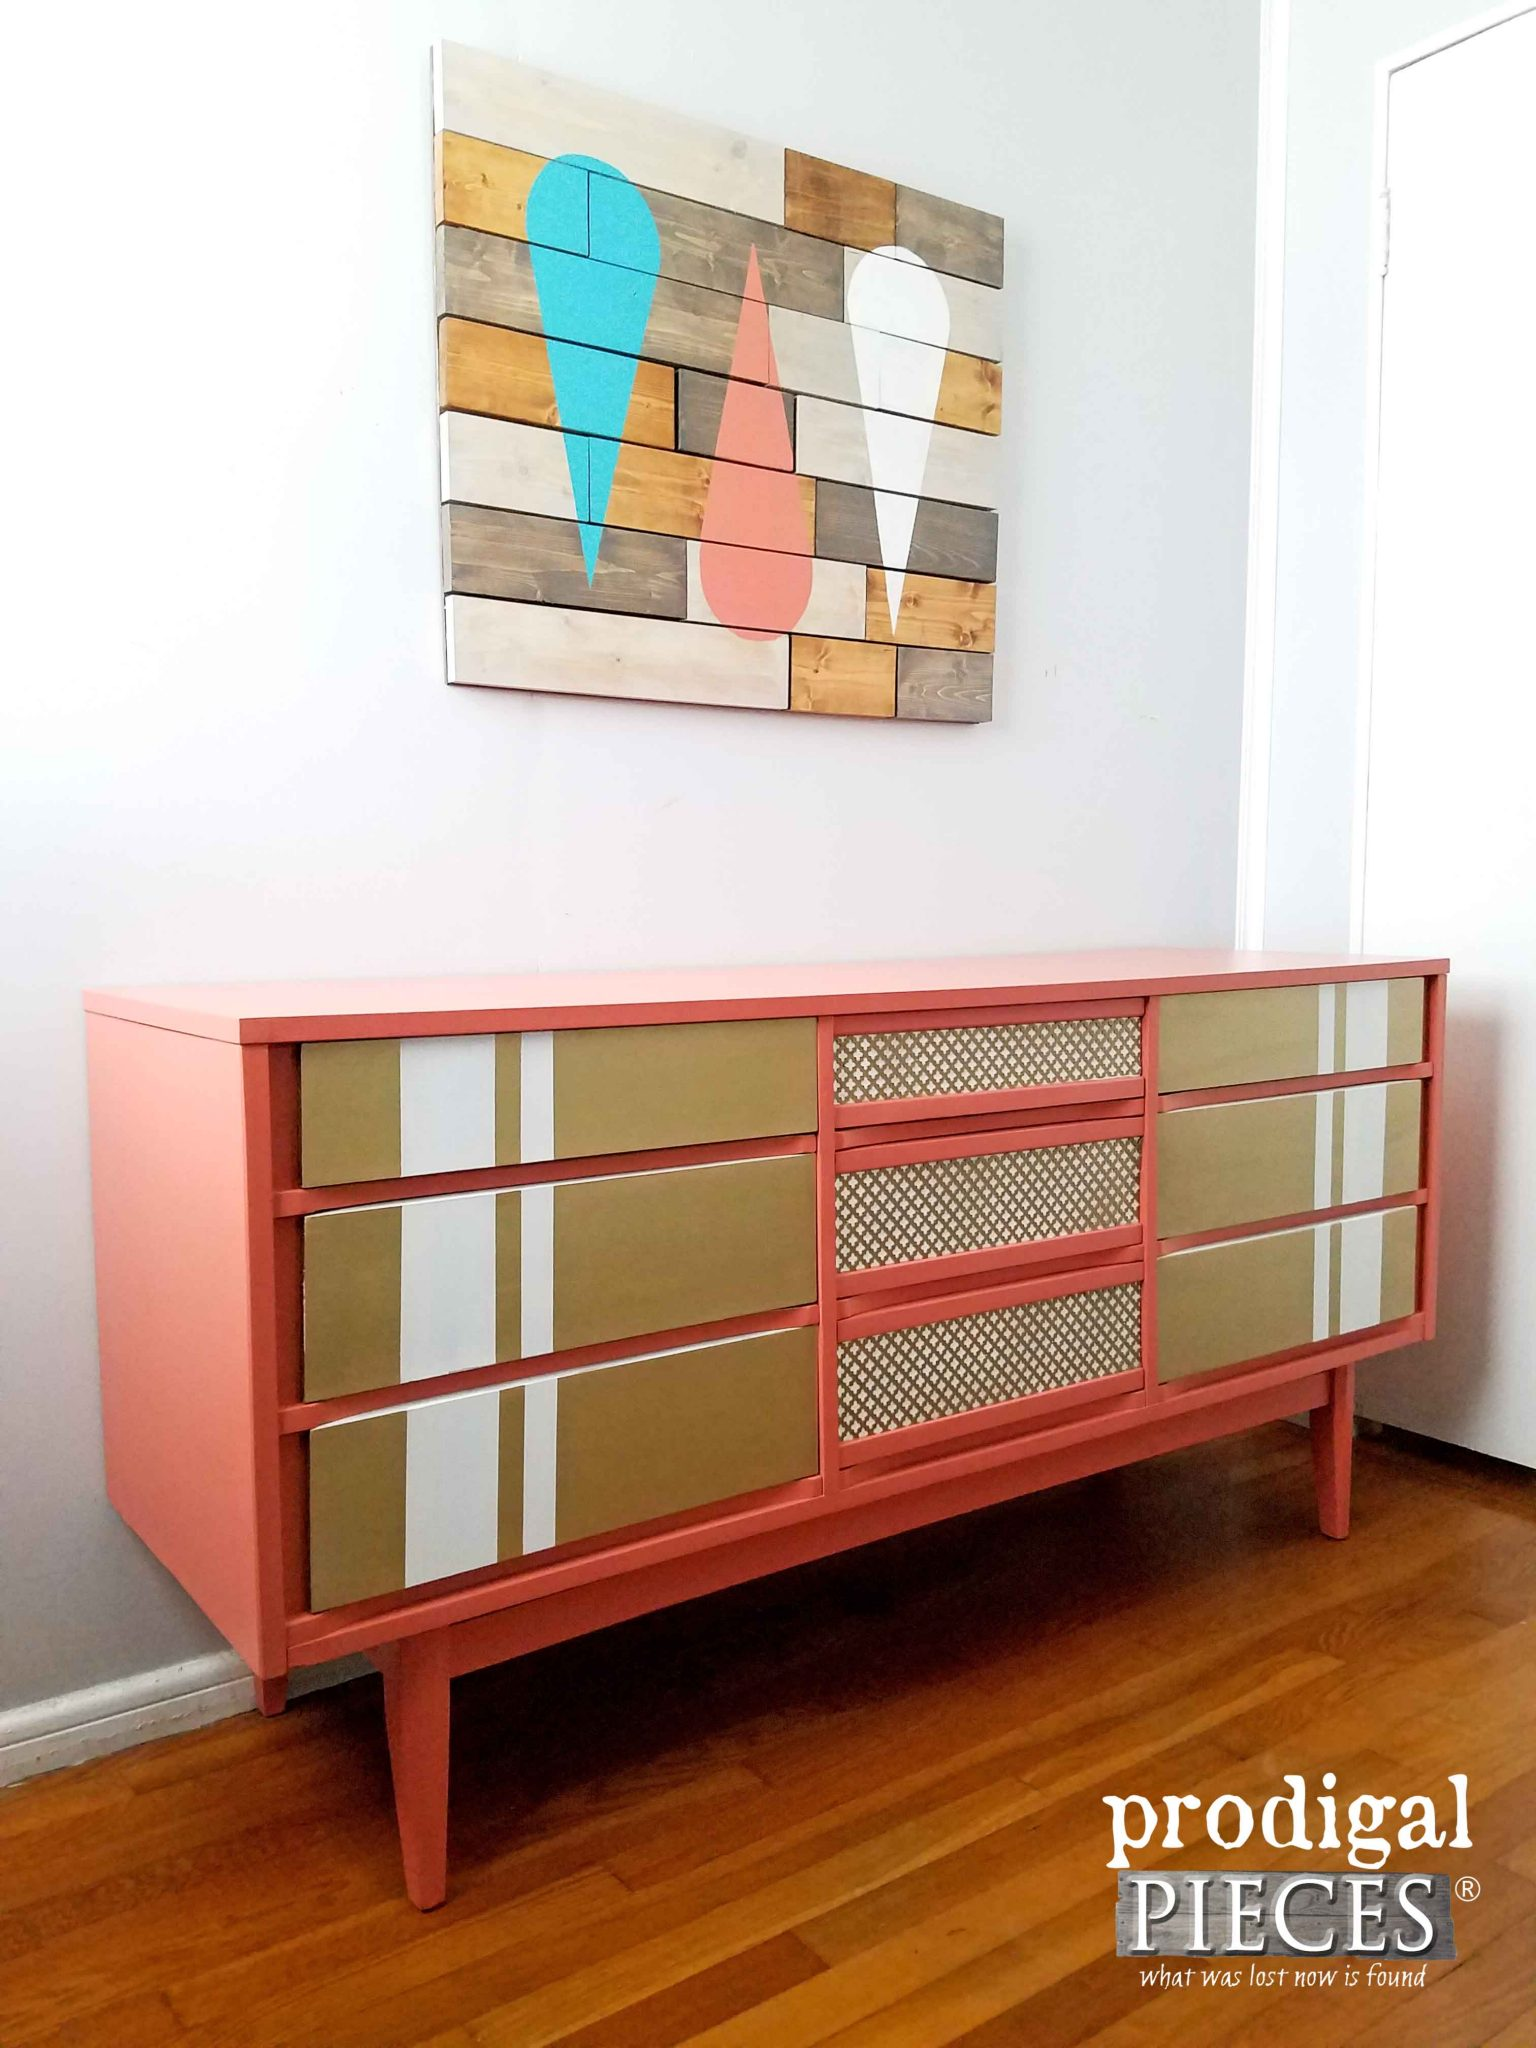 Vintage Mid Century Dresser Gets Modern Chic Makeover by Prodigal Pieces | prodigalpieces.com